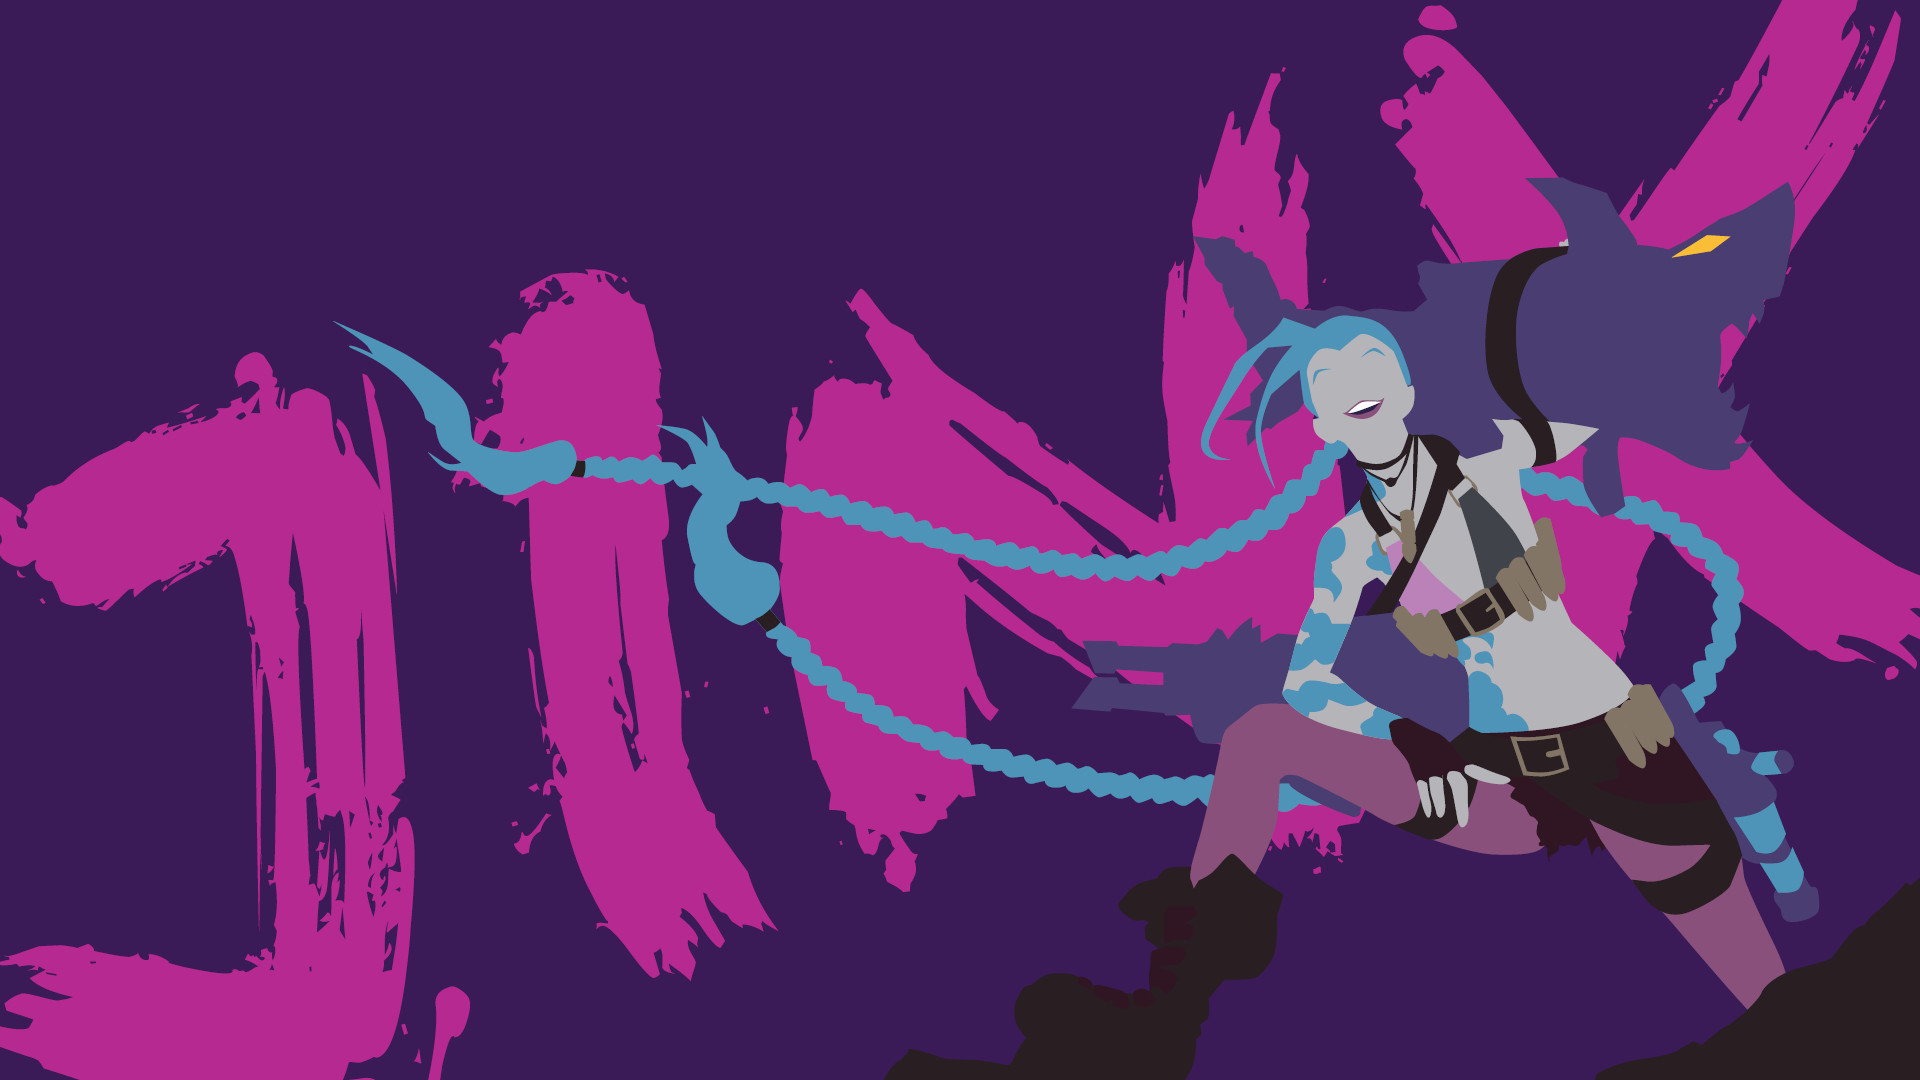 1920x1080 ... QMQM Jinx Wallpapers, LL.